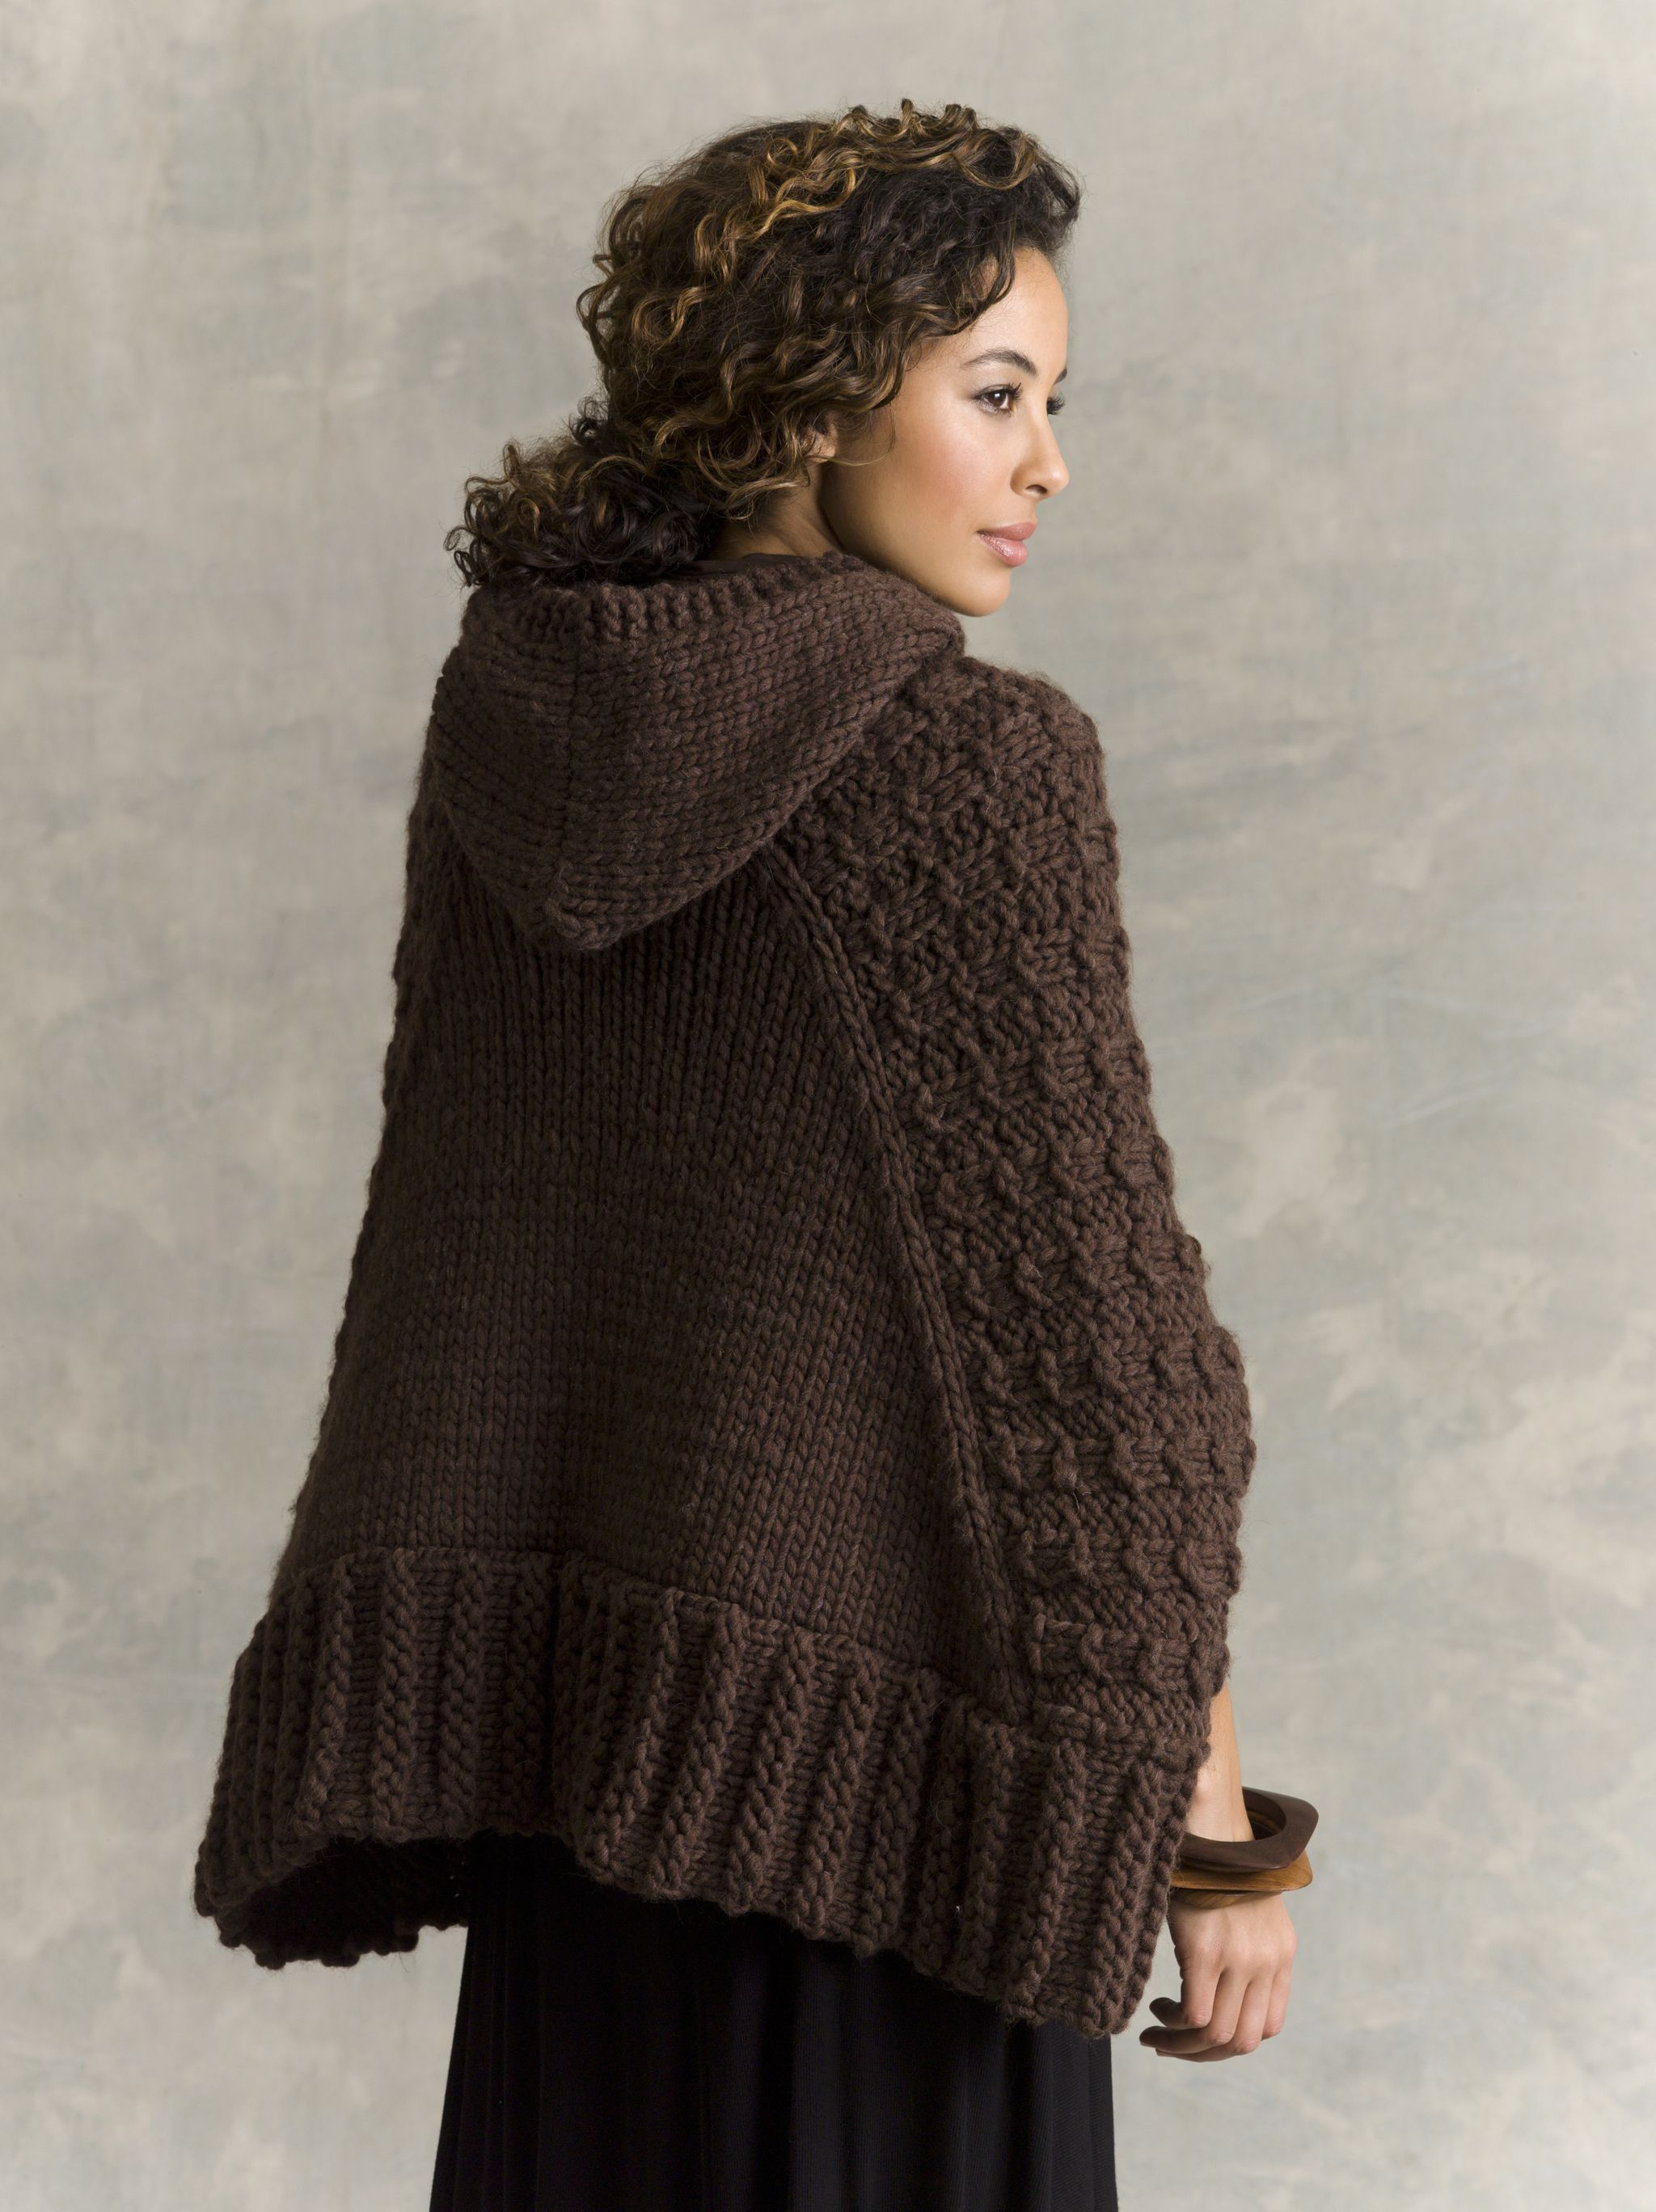 Hawthorne hooded poncho in big montana httpravelry ravelry hawthorne hooded poncho pattern by john brinegar chunky brown hooded poncho bankloansurffo Image collections